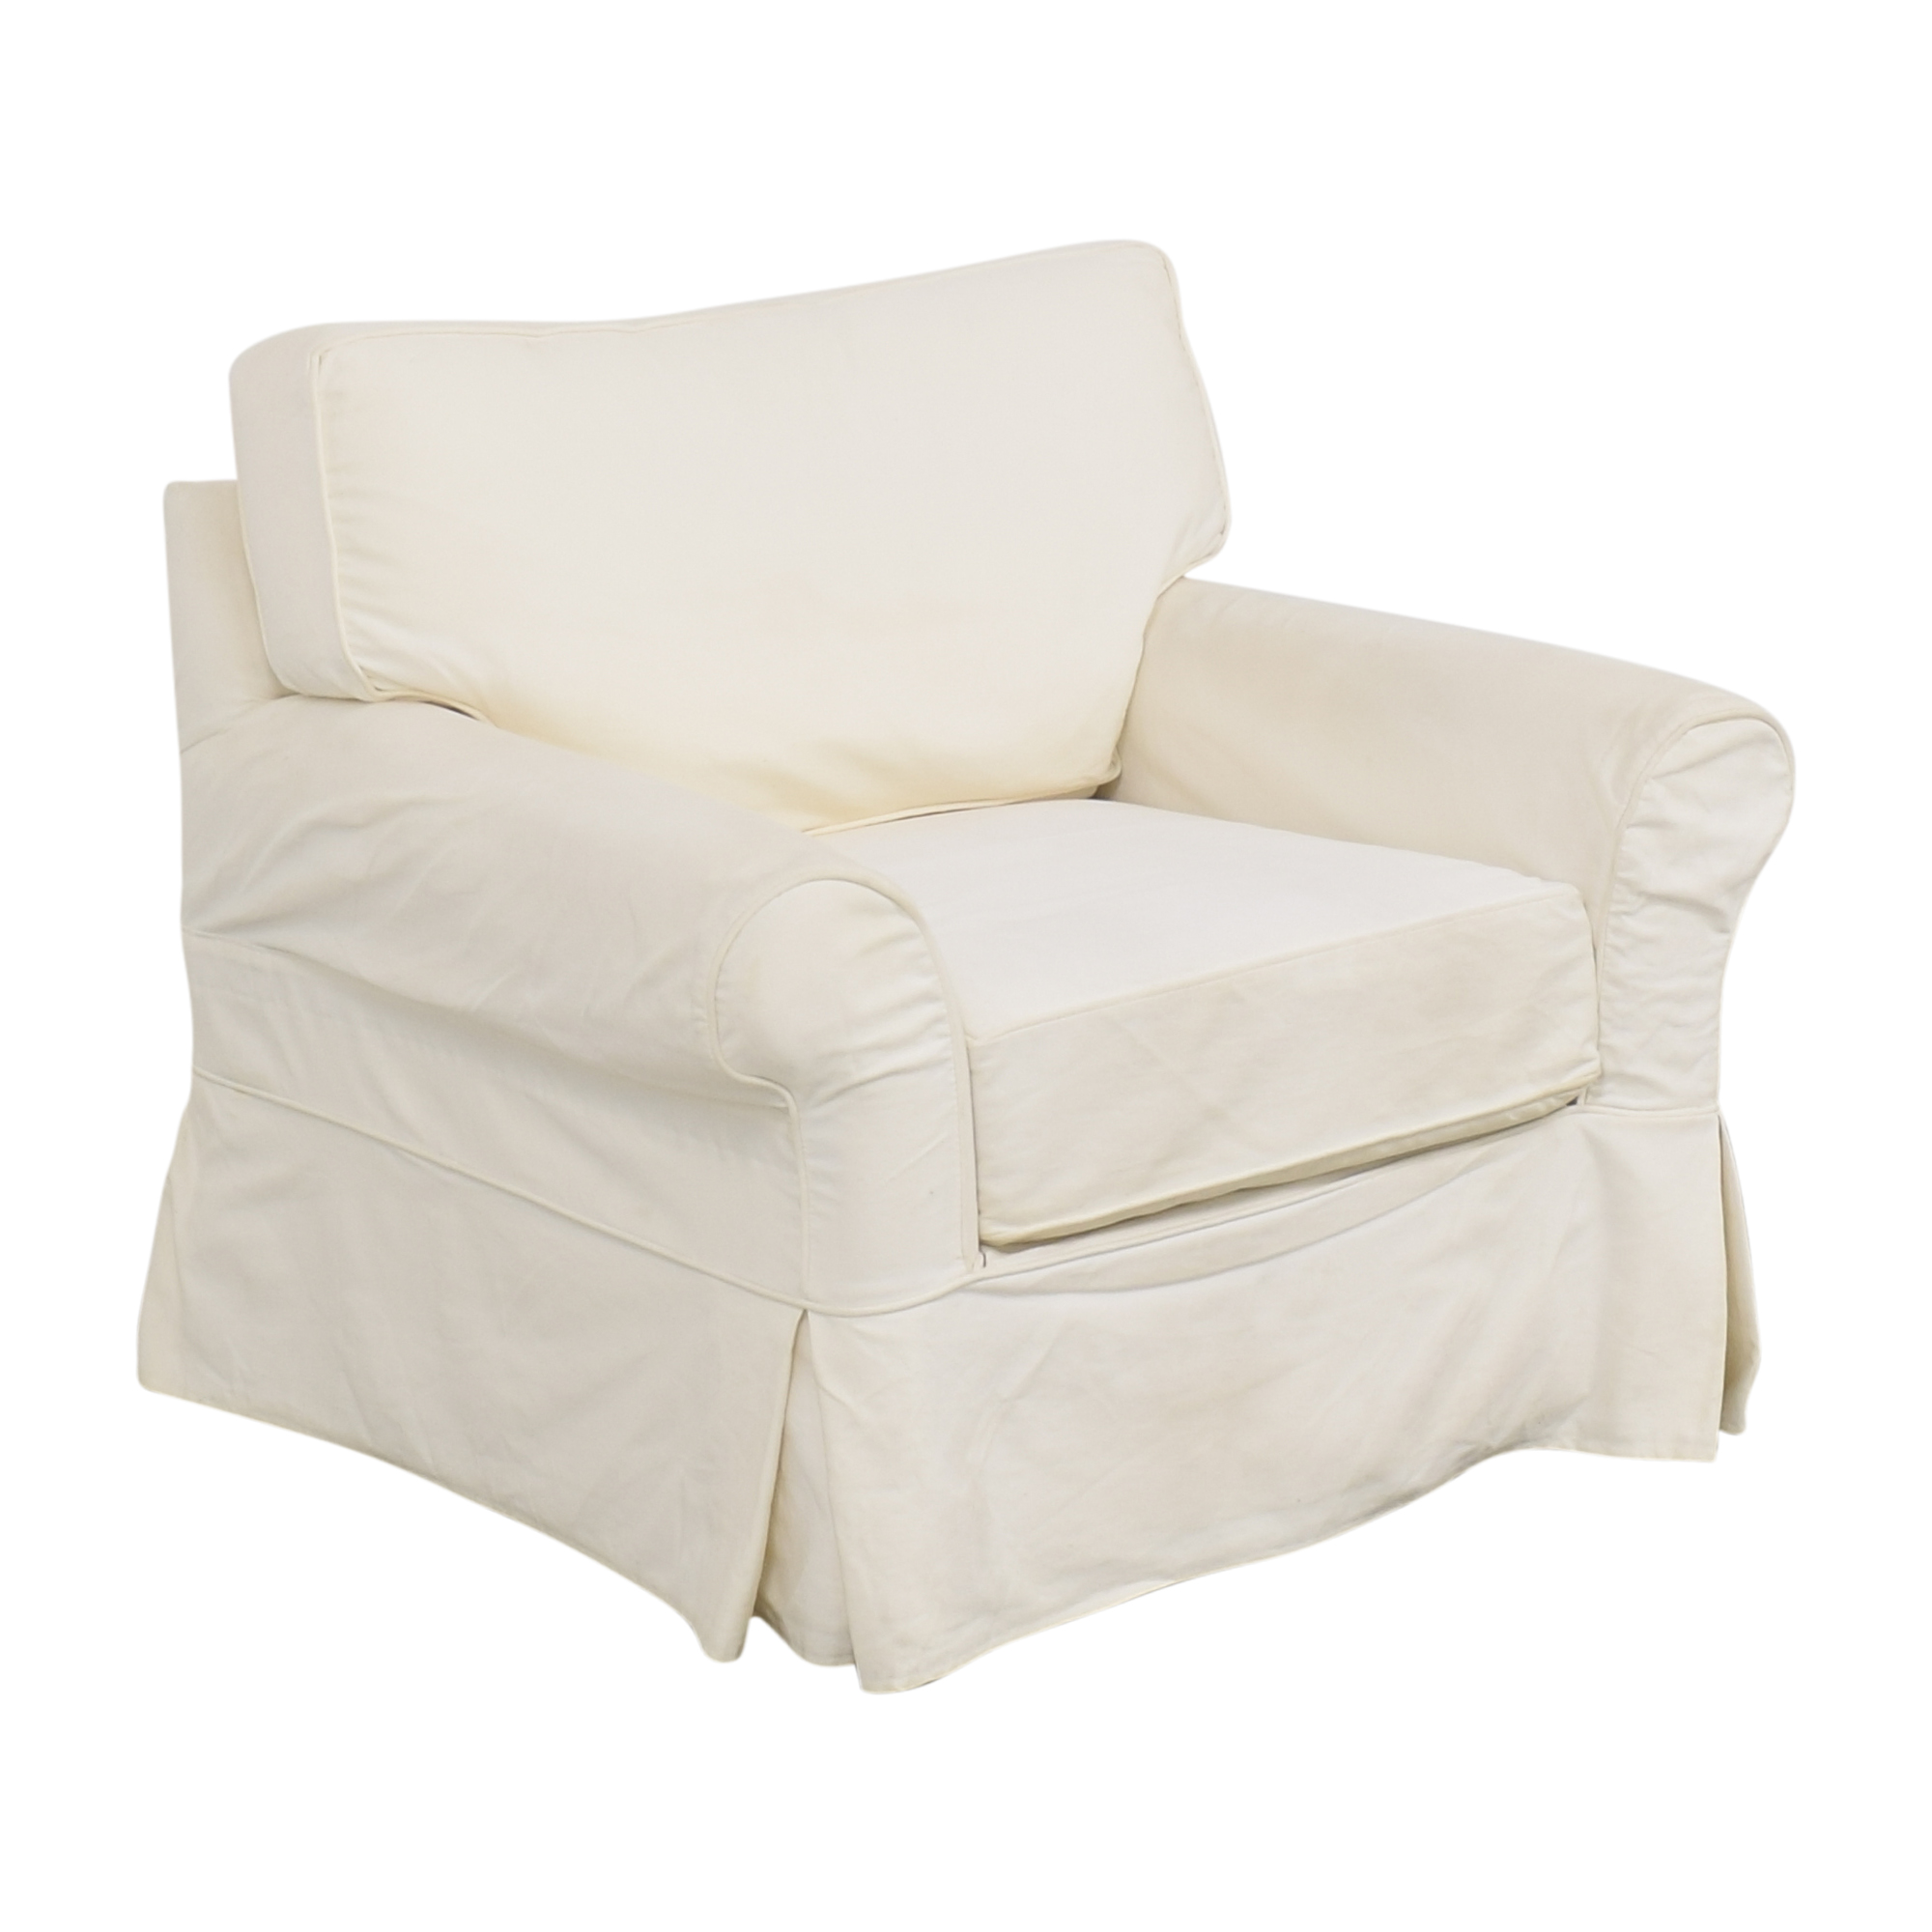 Crate & Barrel Crate & Barrel Slipcovered Arm Chair with Ottoman Chairs